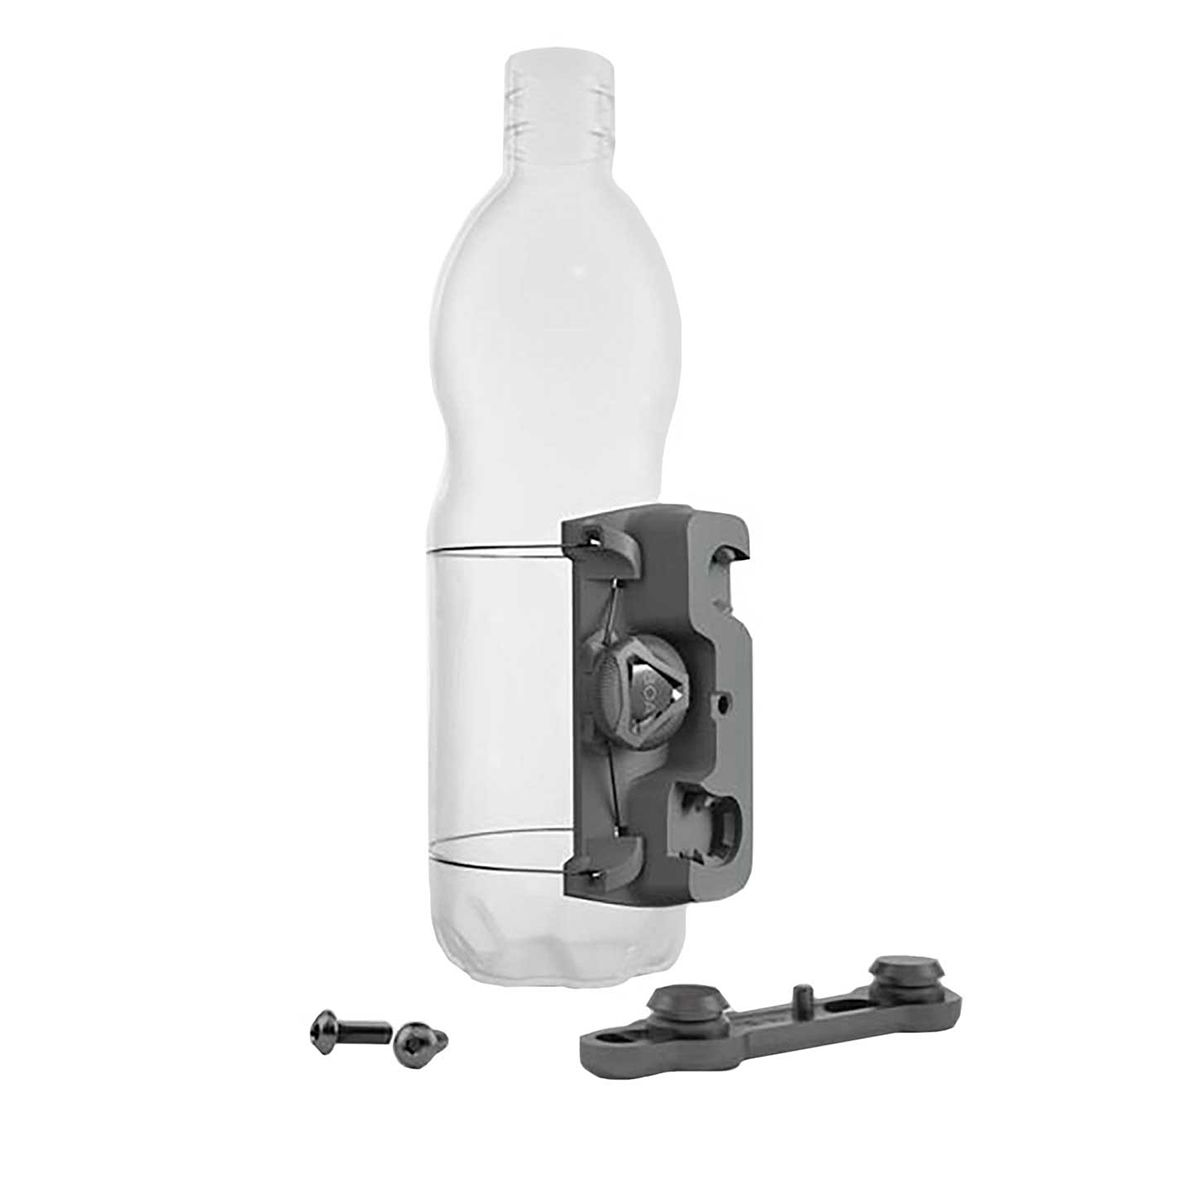 TWIST uni connector universal bottle mount incl. TWIST bike base